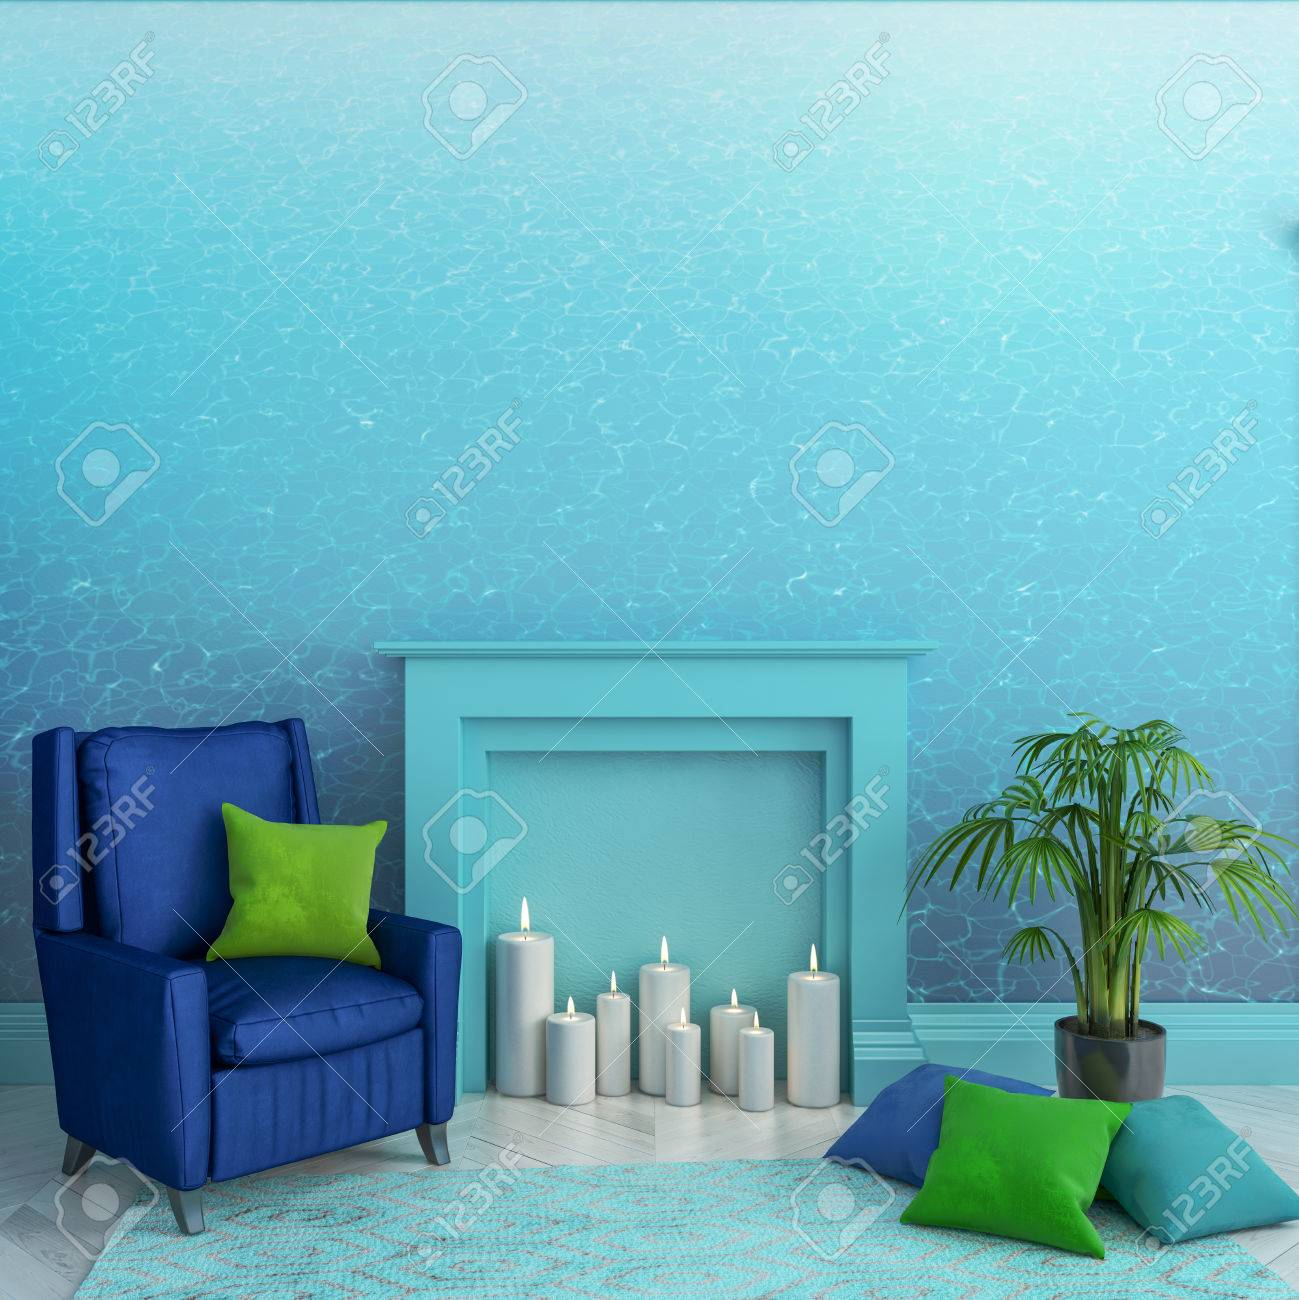 empty room with blue water texture wallpaper on the wall